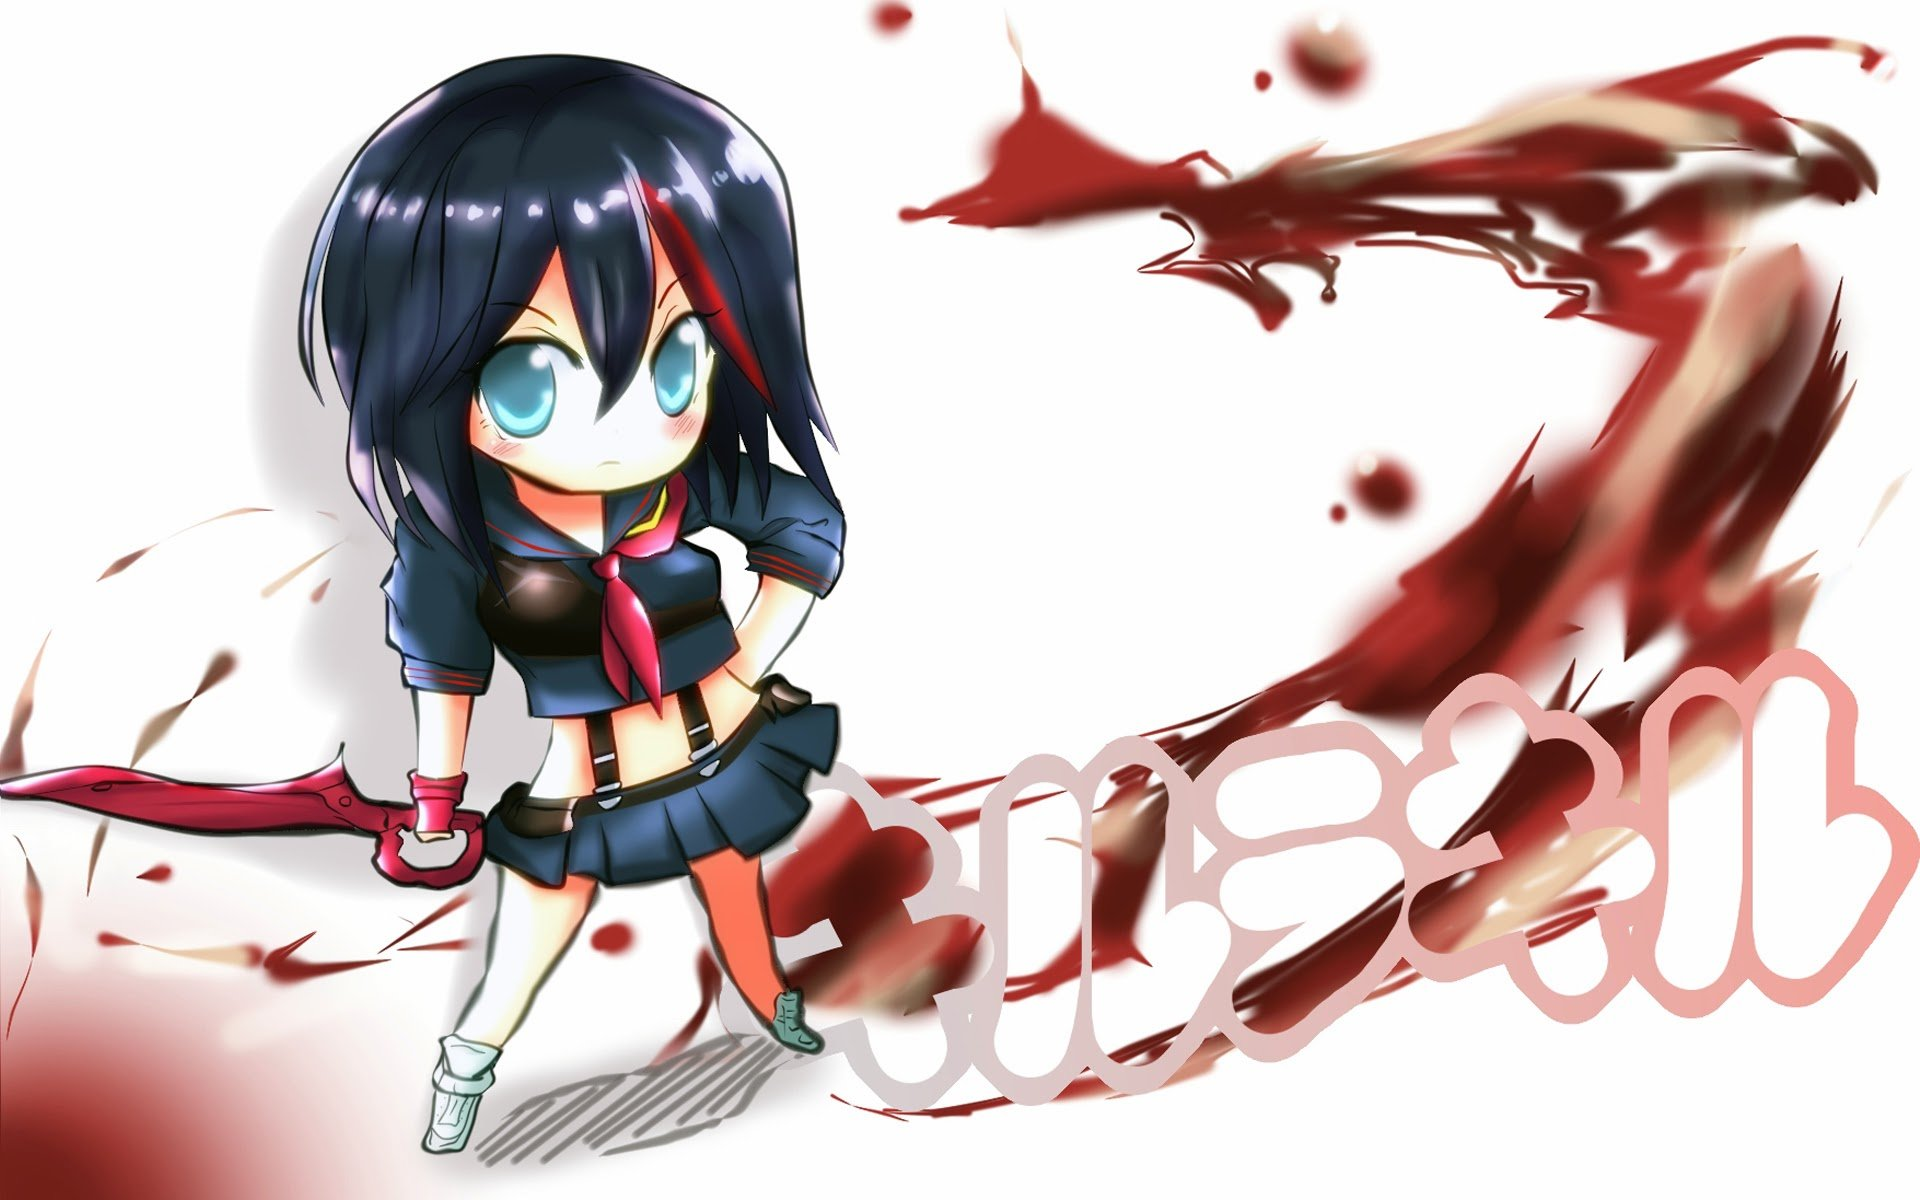 matoi ryuko chibi kill la kill anime girl image hd wallpaper 1920x1200 1920x1200